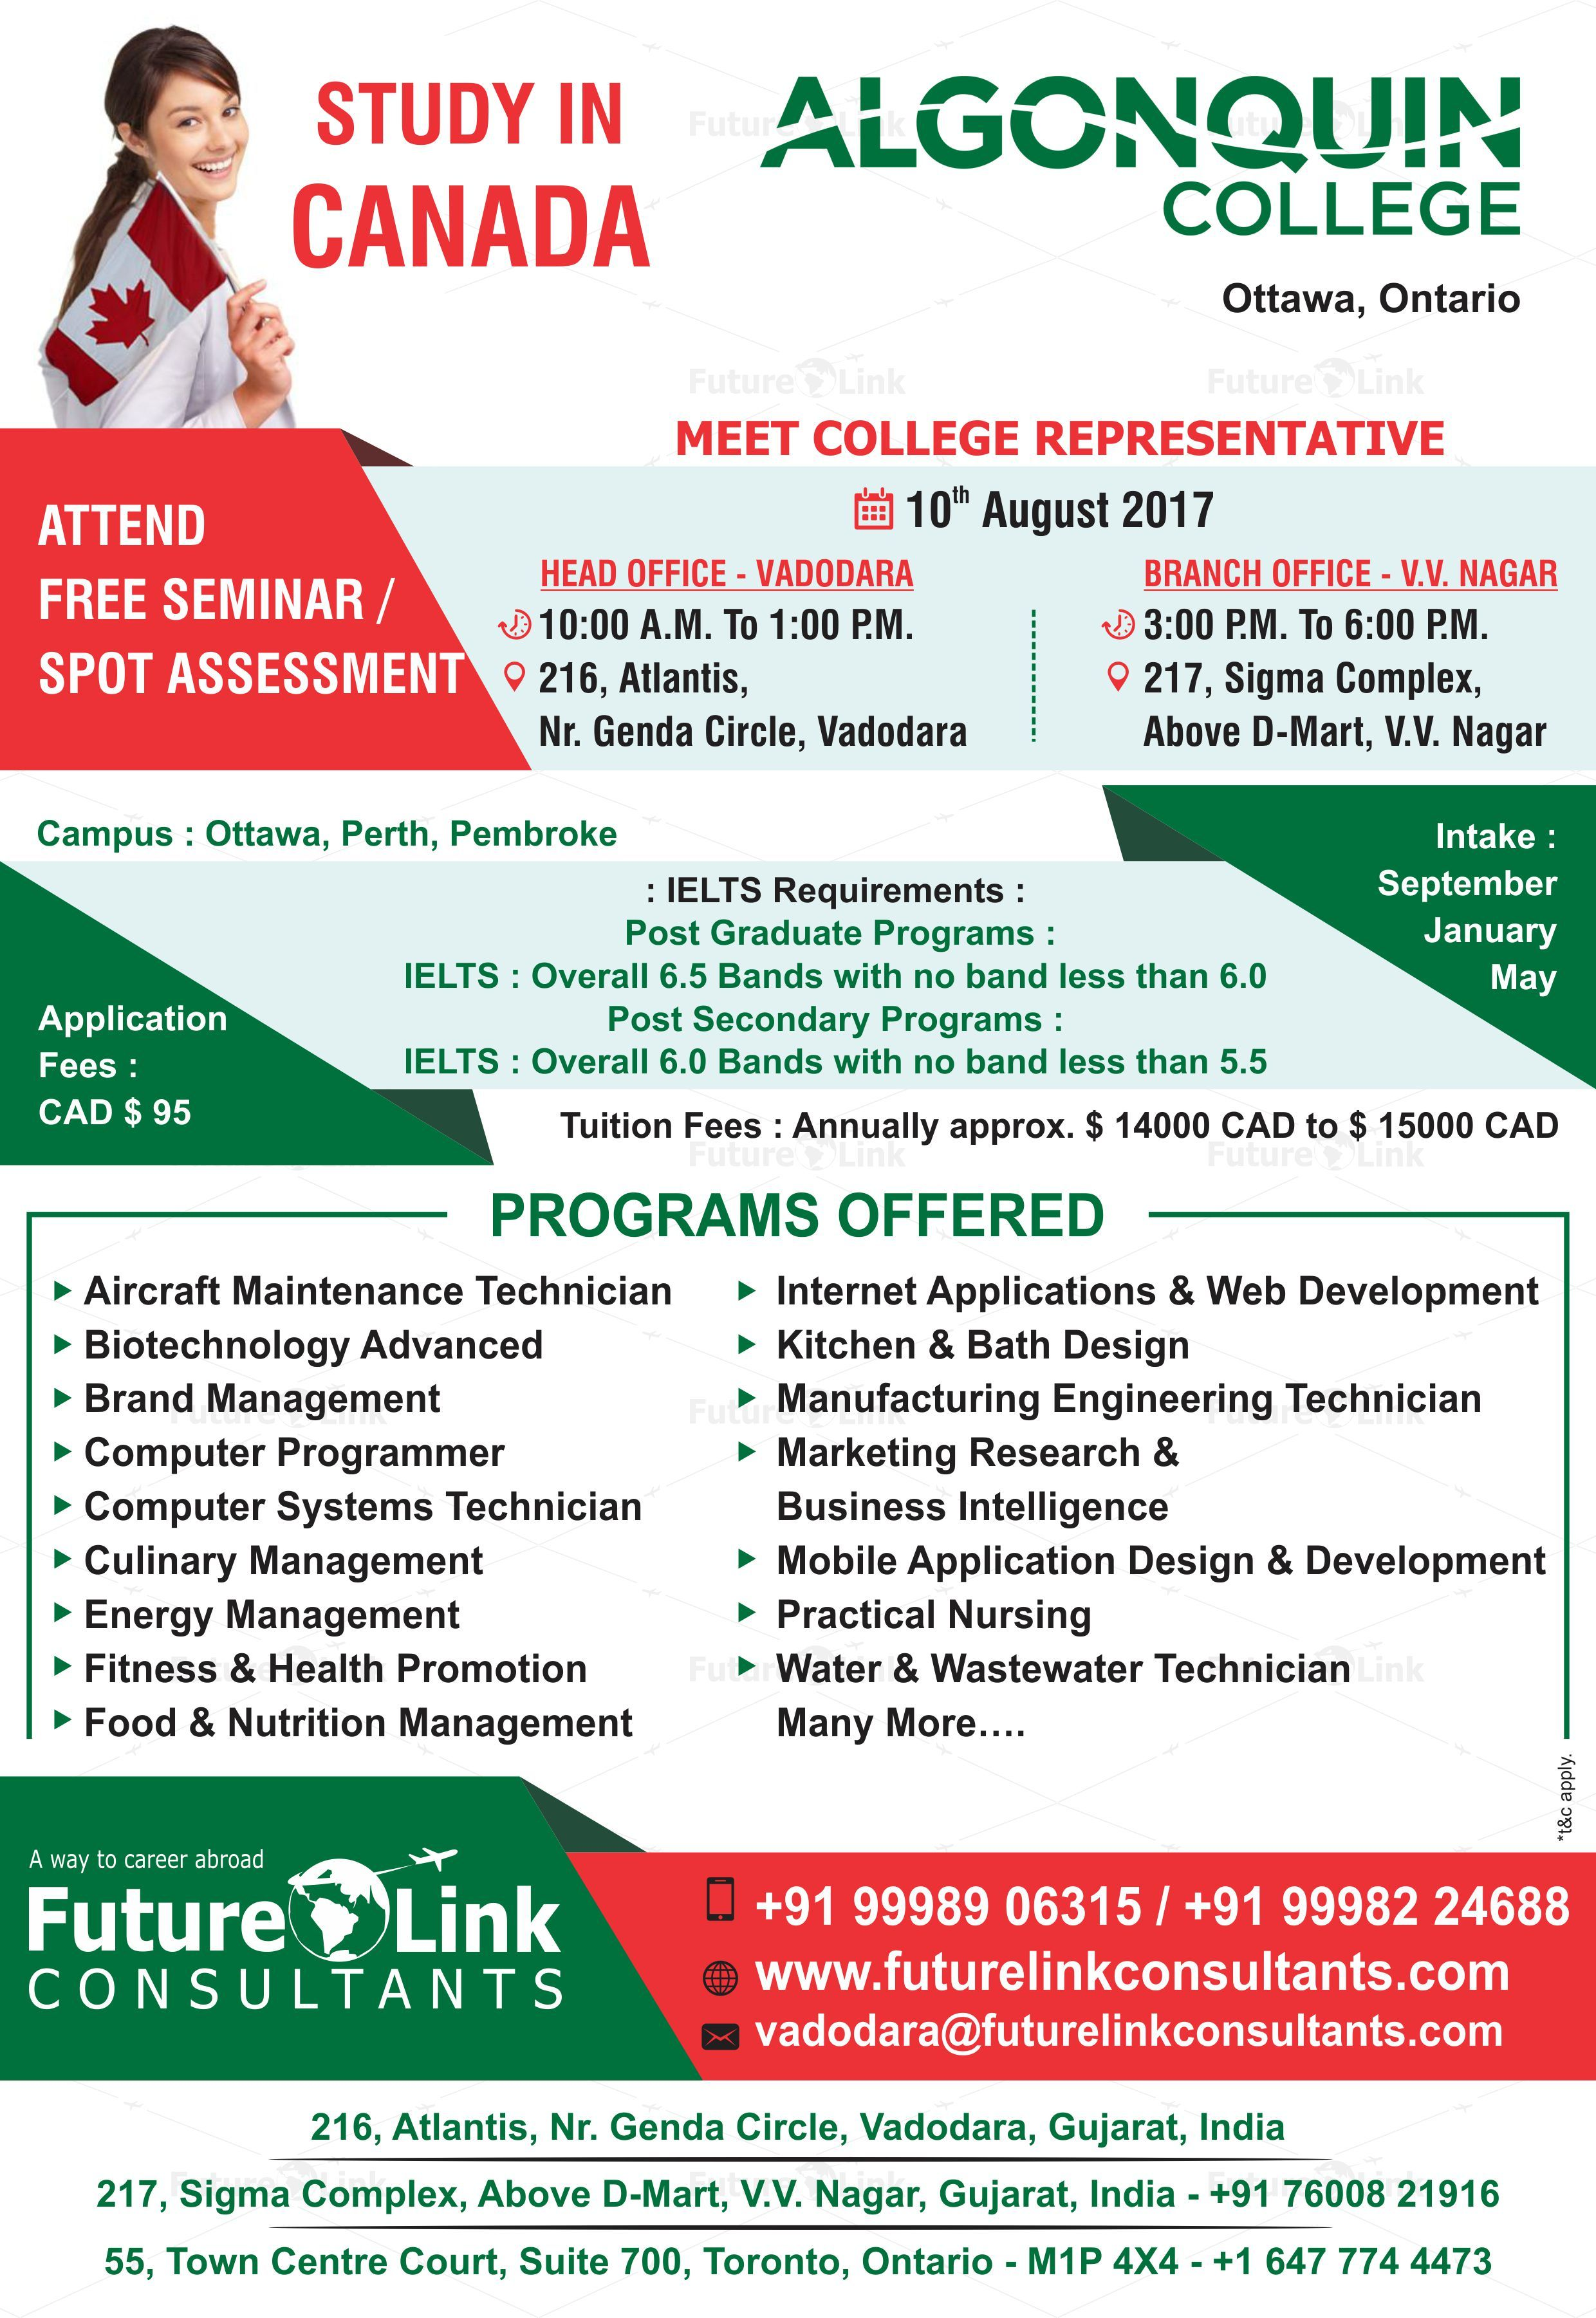 Attend Free Seminar And Spot Assessment Of Algonquin College, Canada At  Future Link Consultants!